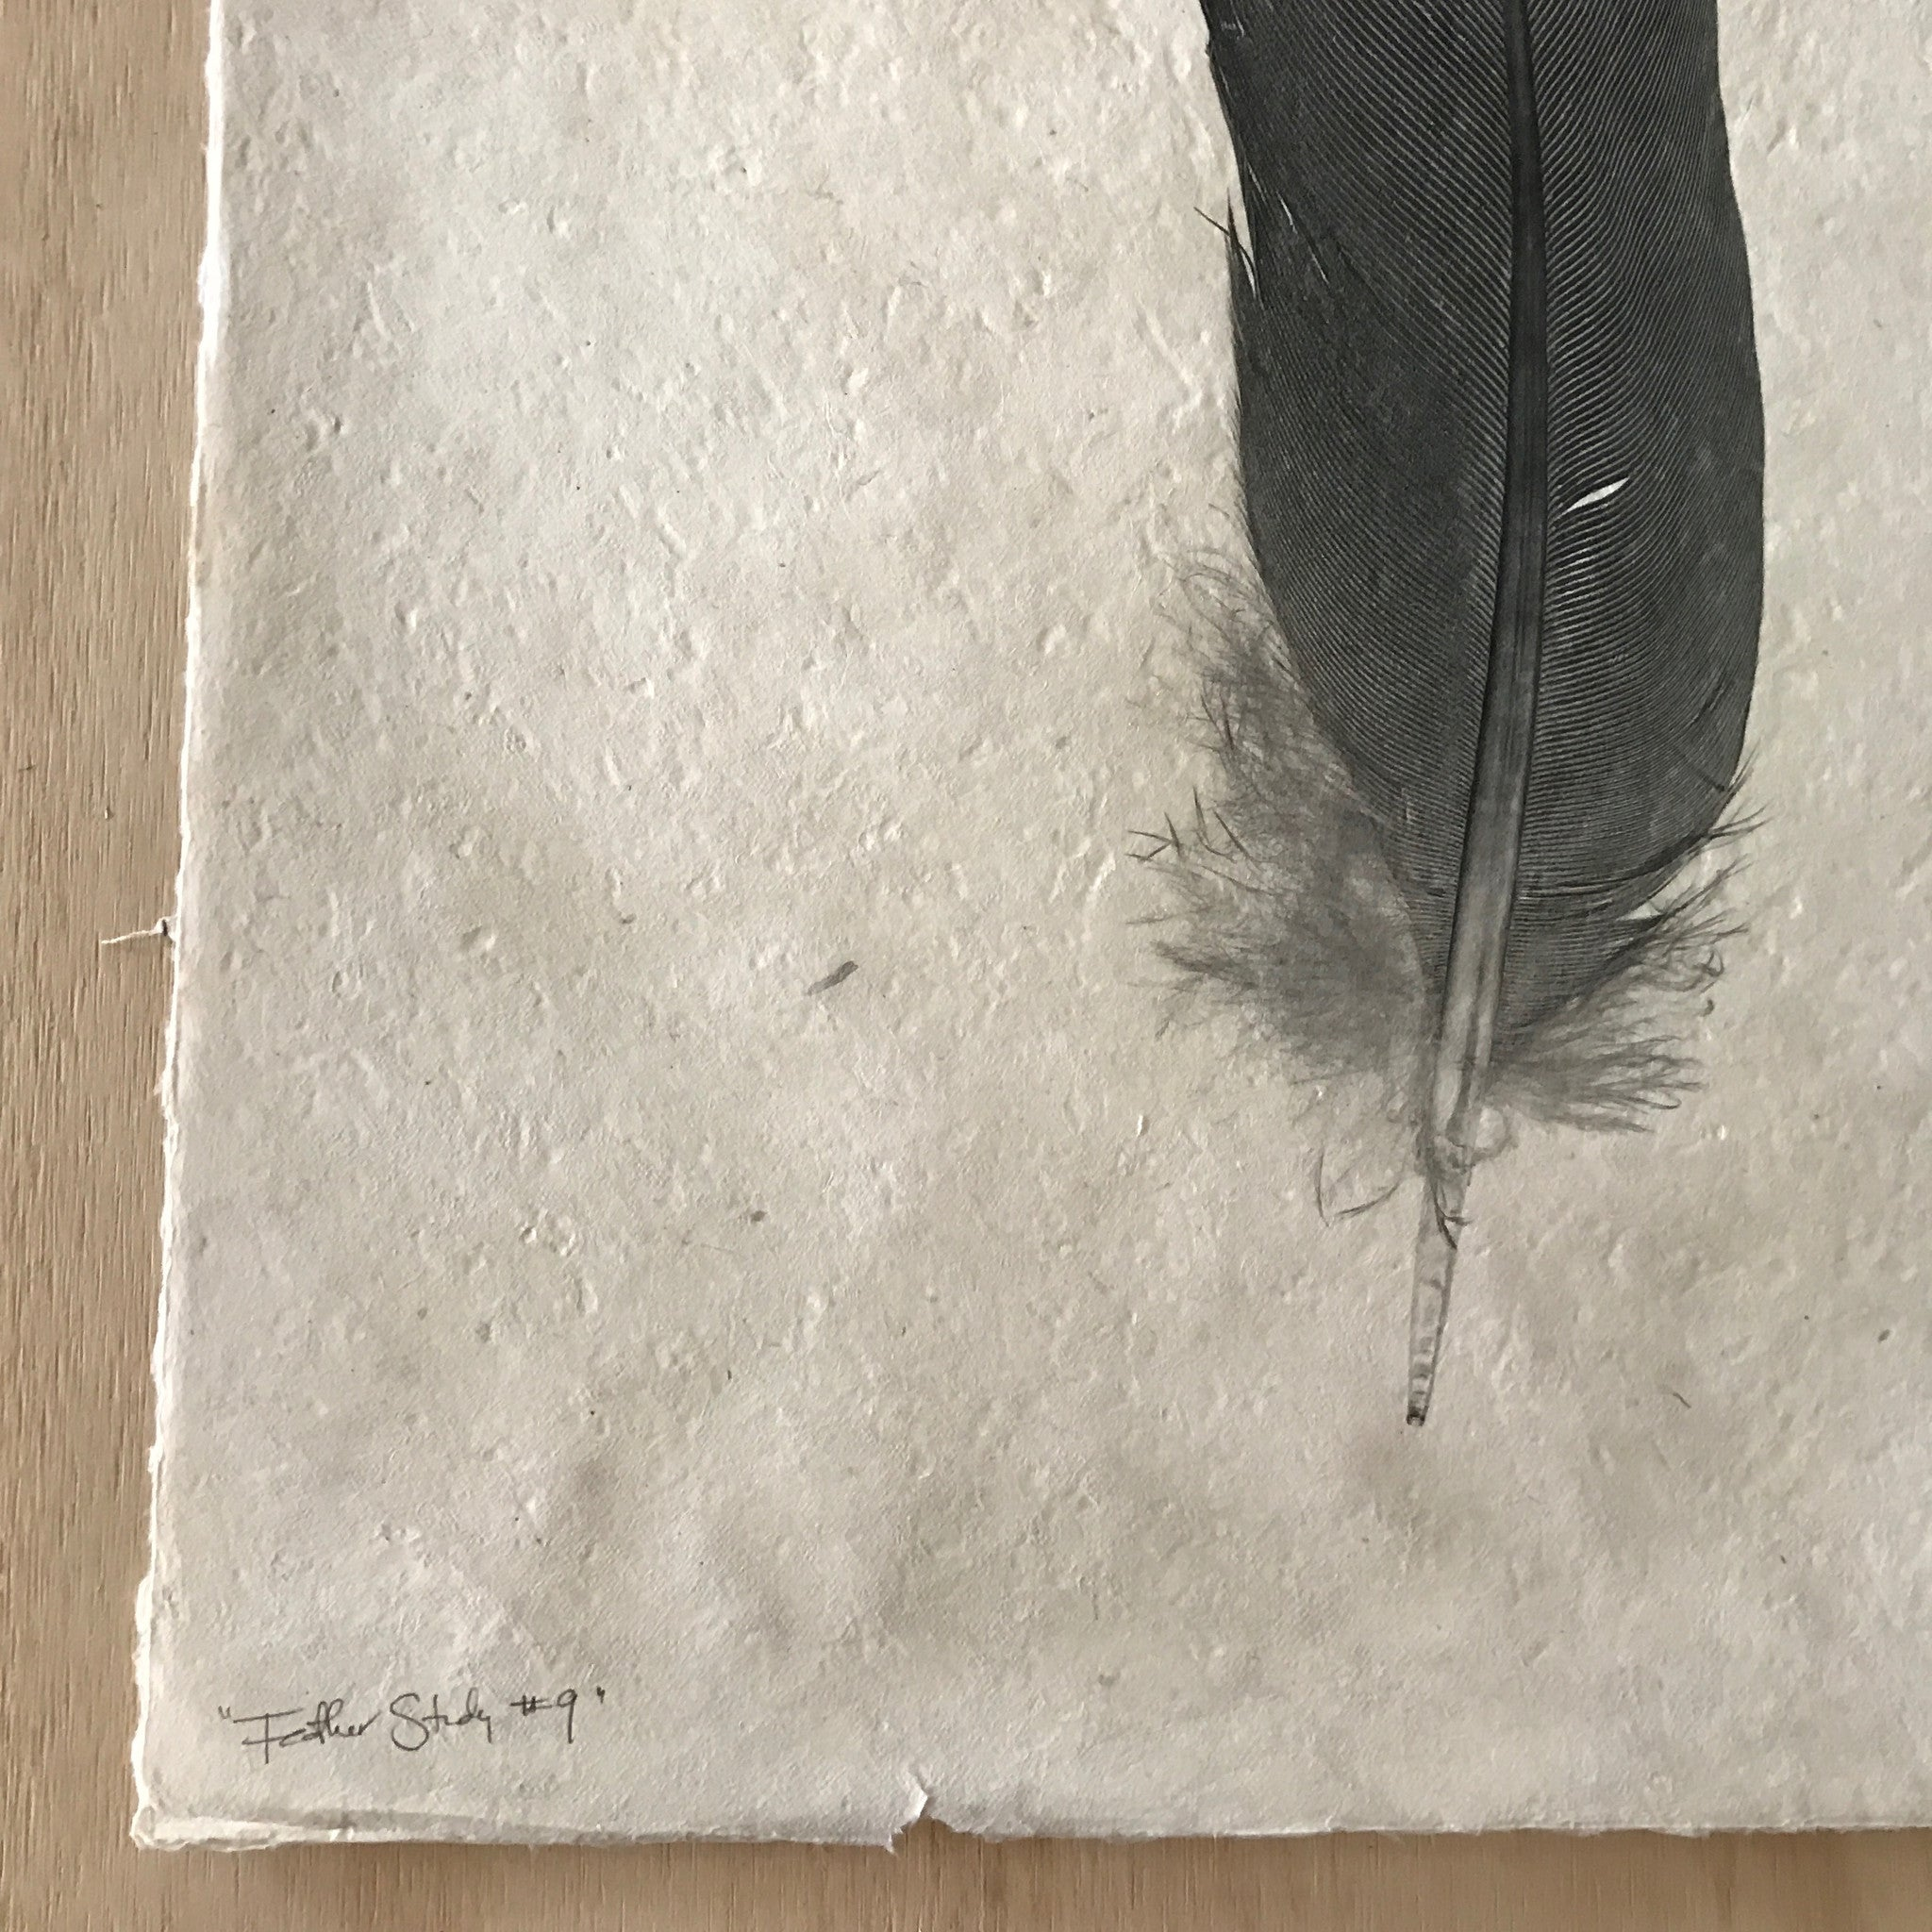 Feather Study Number 9 by Barloga Studios - Upstate MN